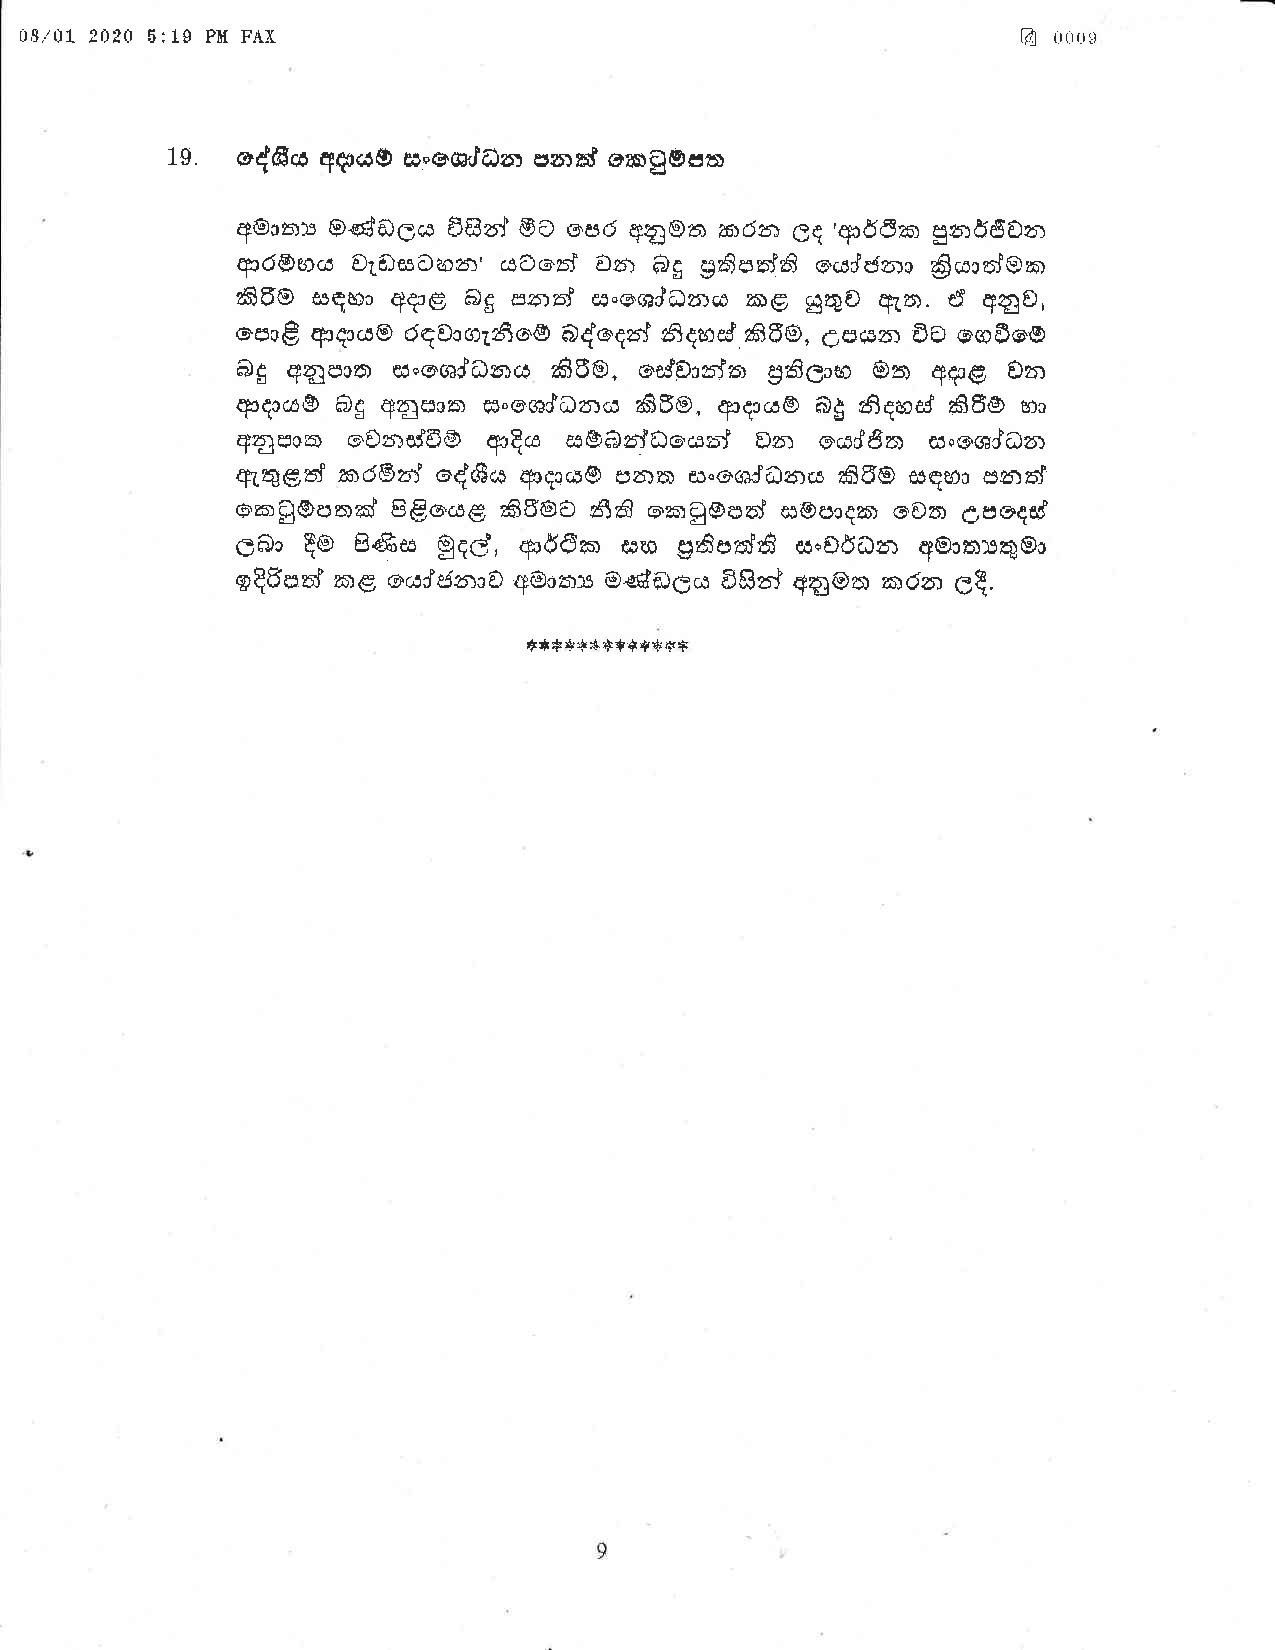 Cabinet Decision on 08.01.2020 page 009